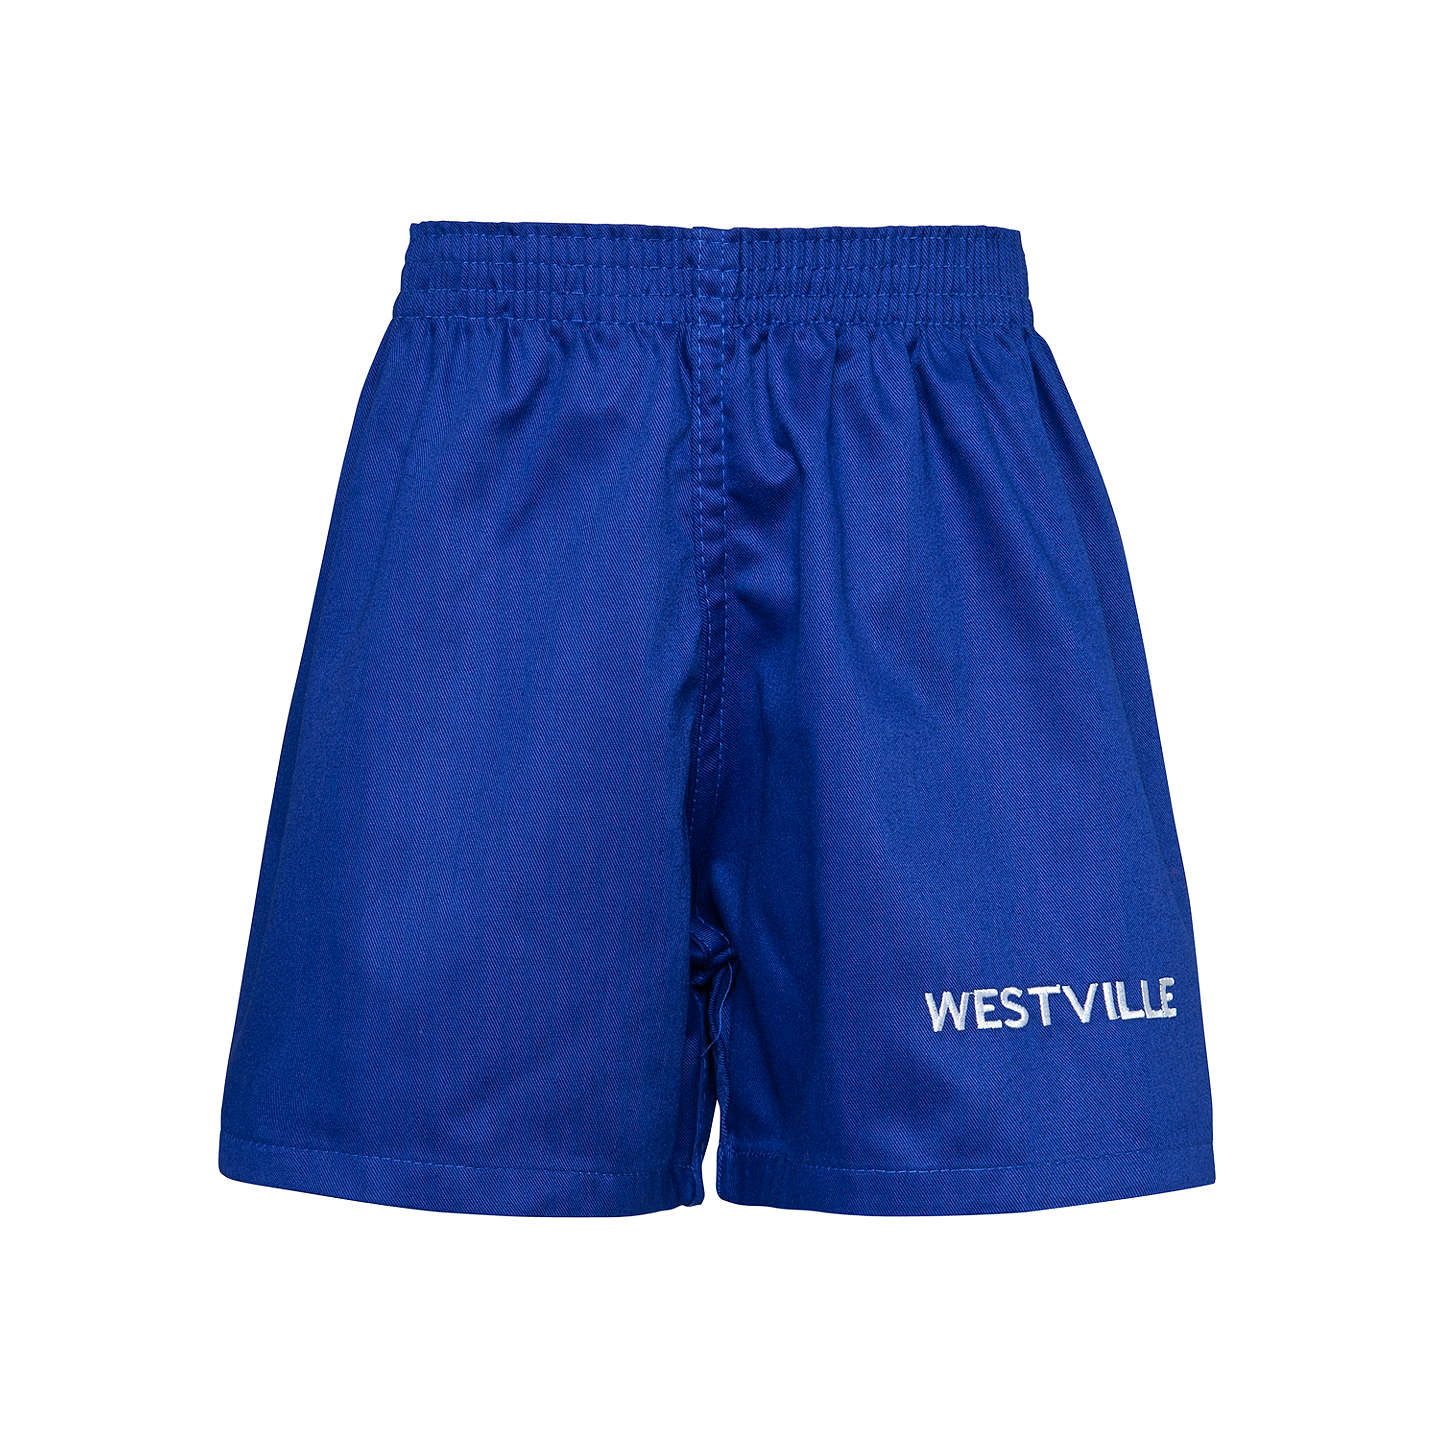 BuyWestville House School Games Shorts, Royal Blue, W18'' Online at johnlewis.com